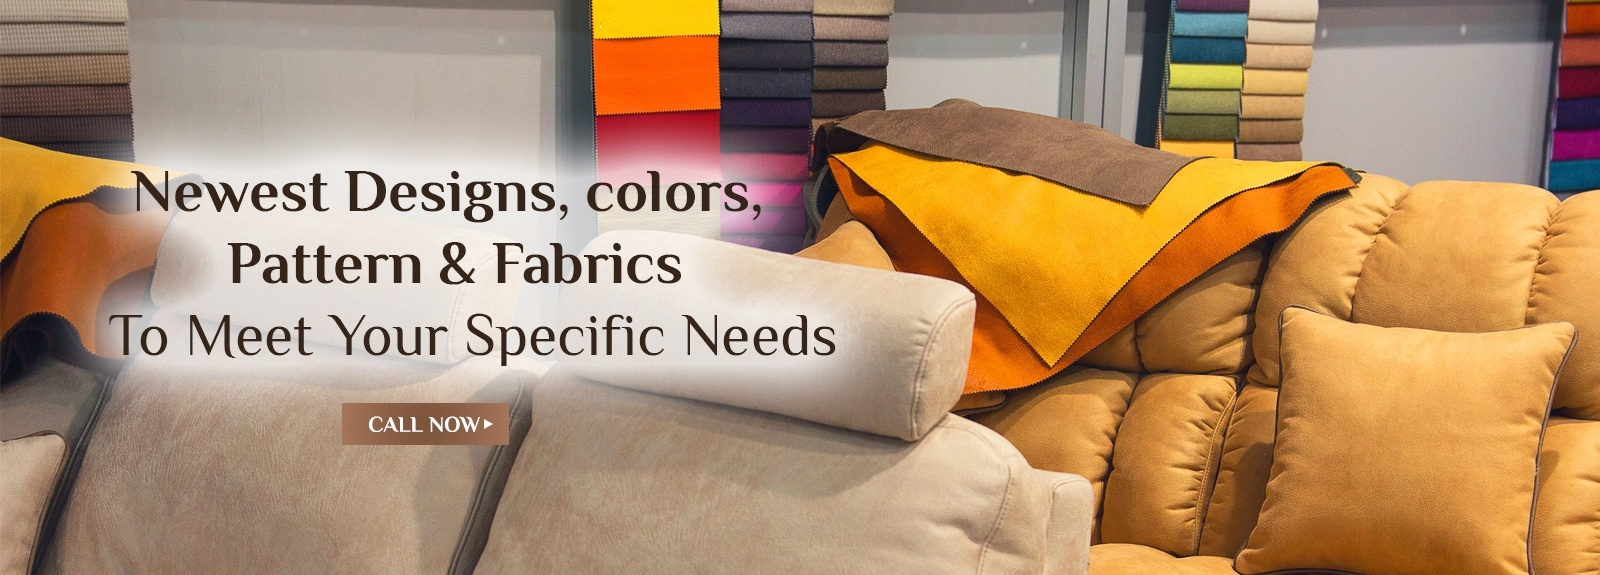 Residential Upholstery Services by Nesco Upholstery and Design